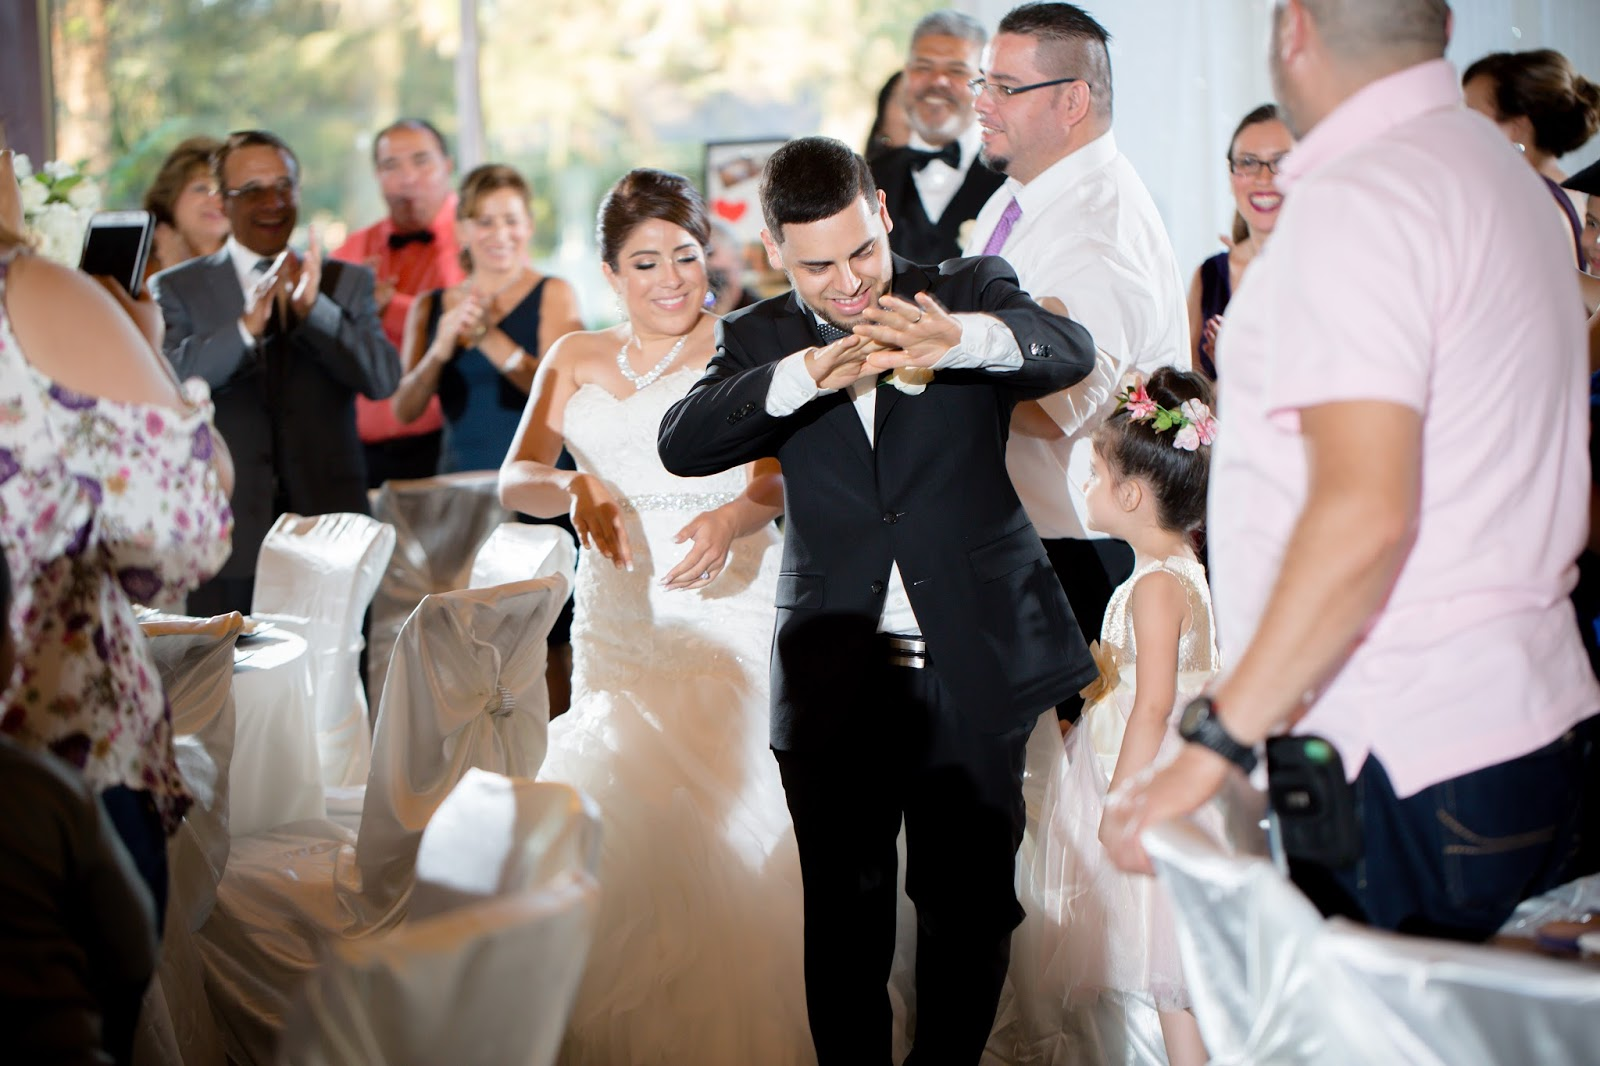 Bride and Groom dance their way through guests